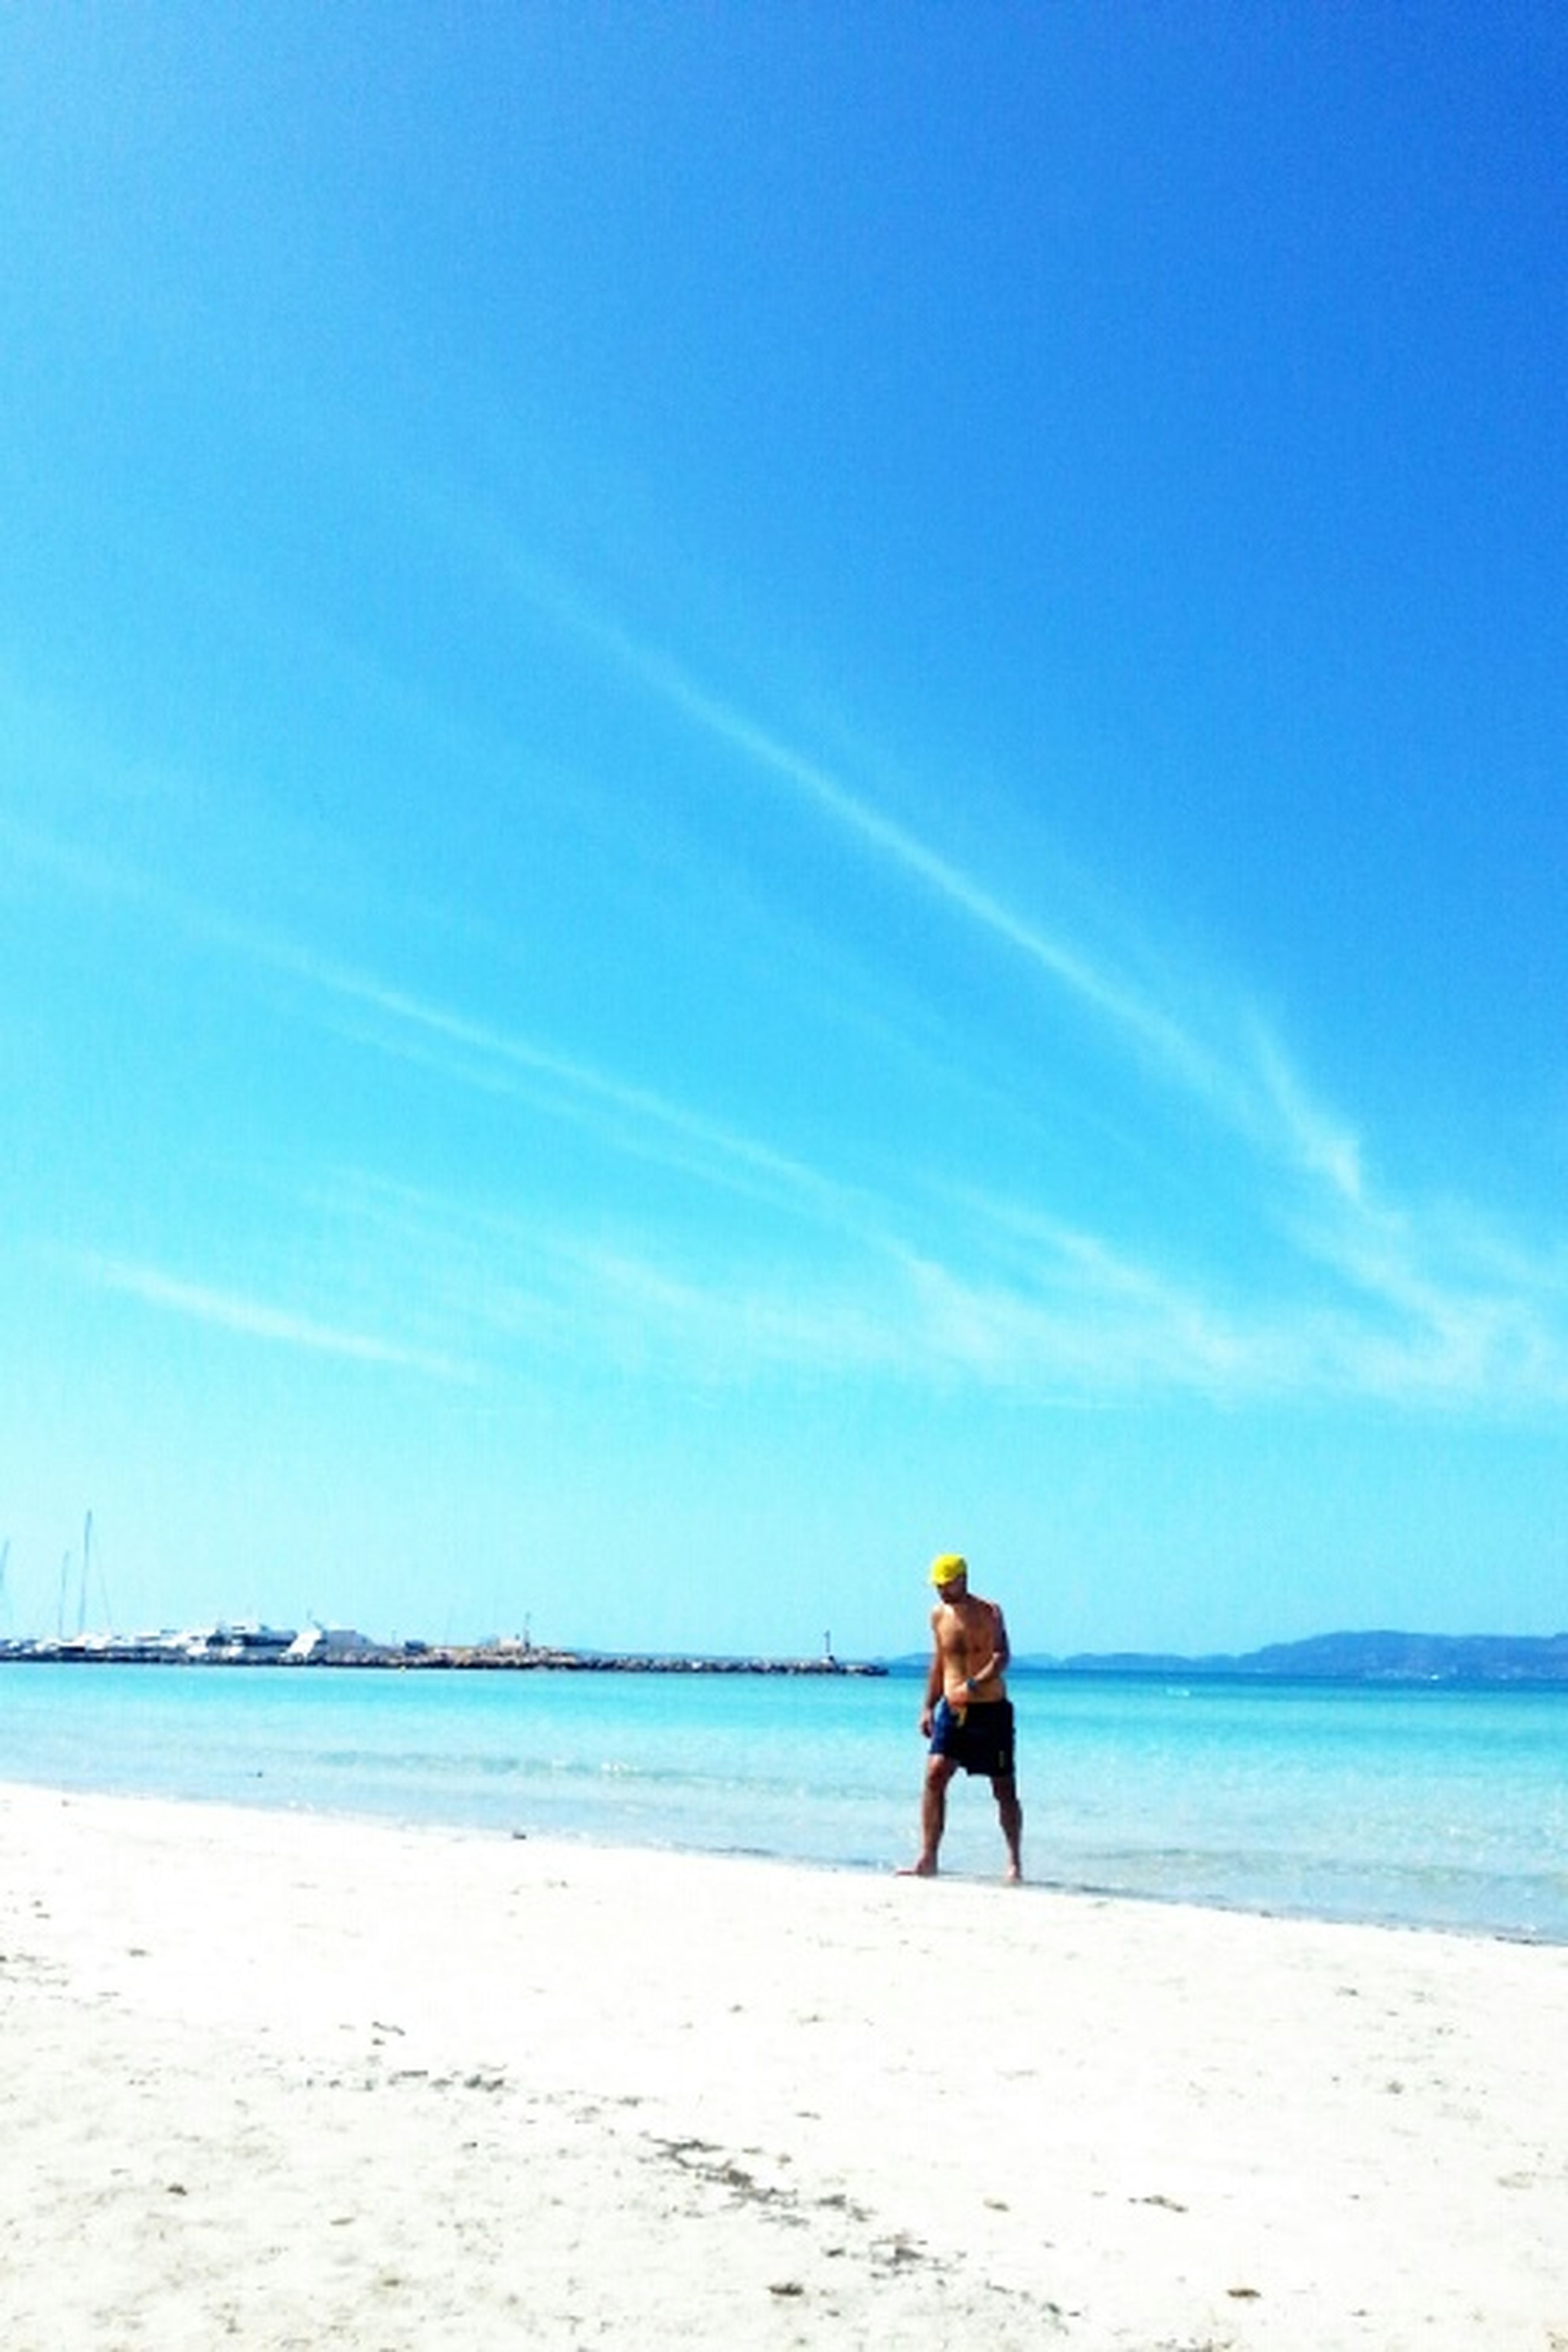 sea, beach, blue, water, rear view, shore, sky, sand, tranquility, lifestyles, tranquil scene, leisure activity, full length, scenics, standing, beauty in nature, nature, vacations